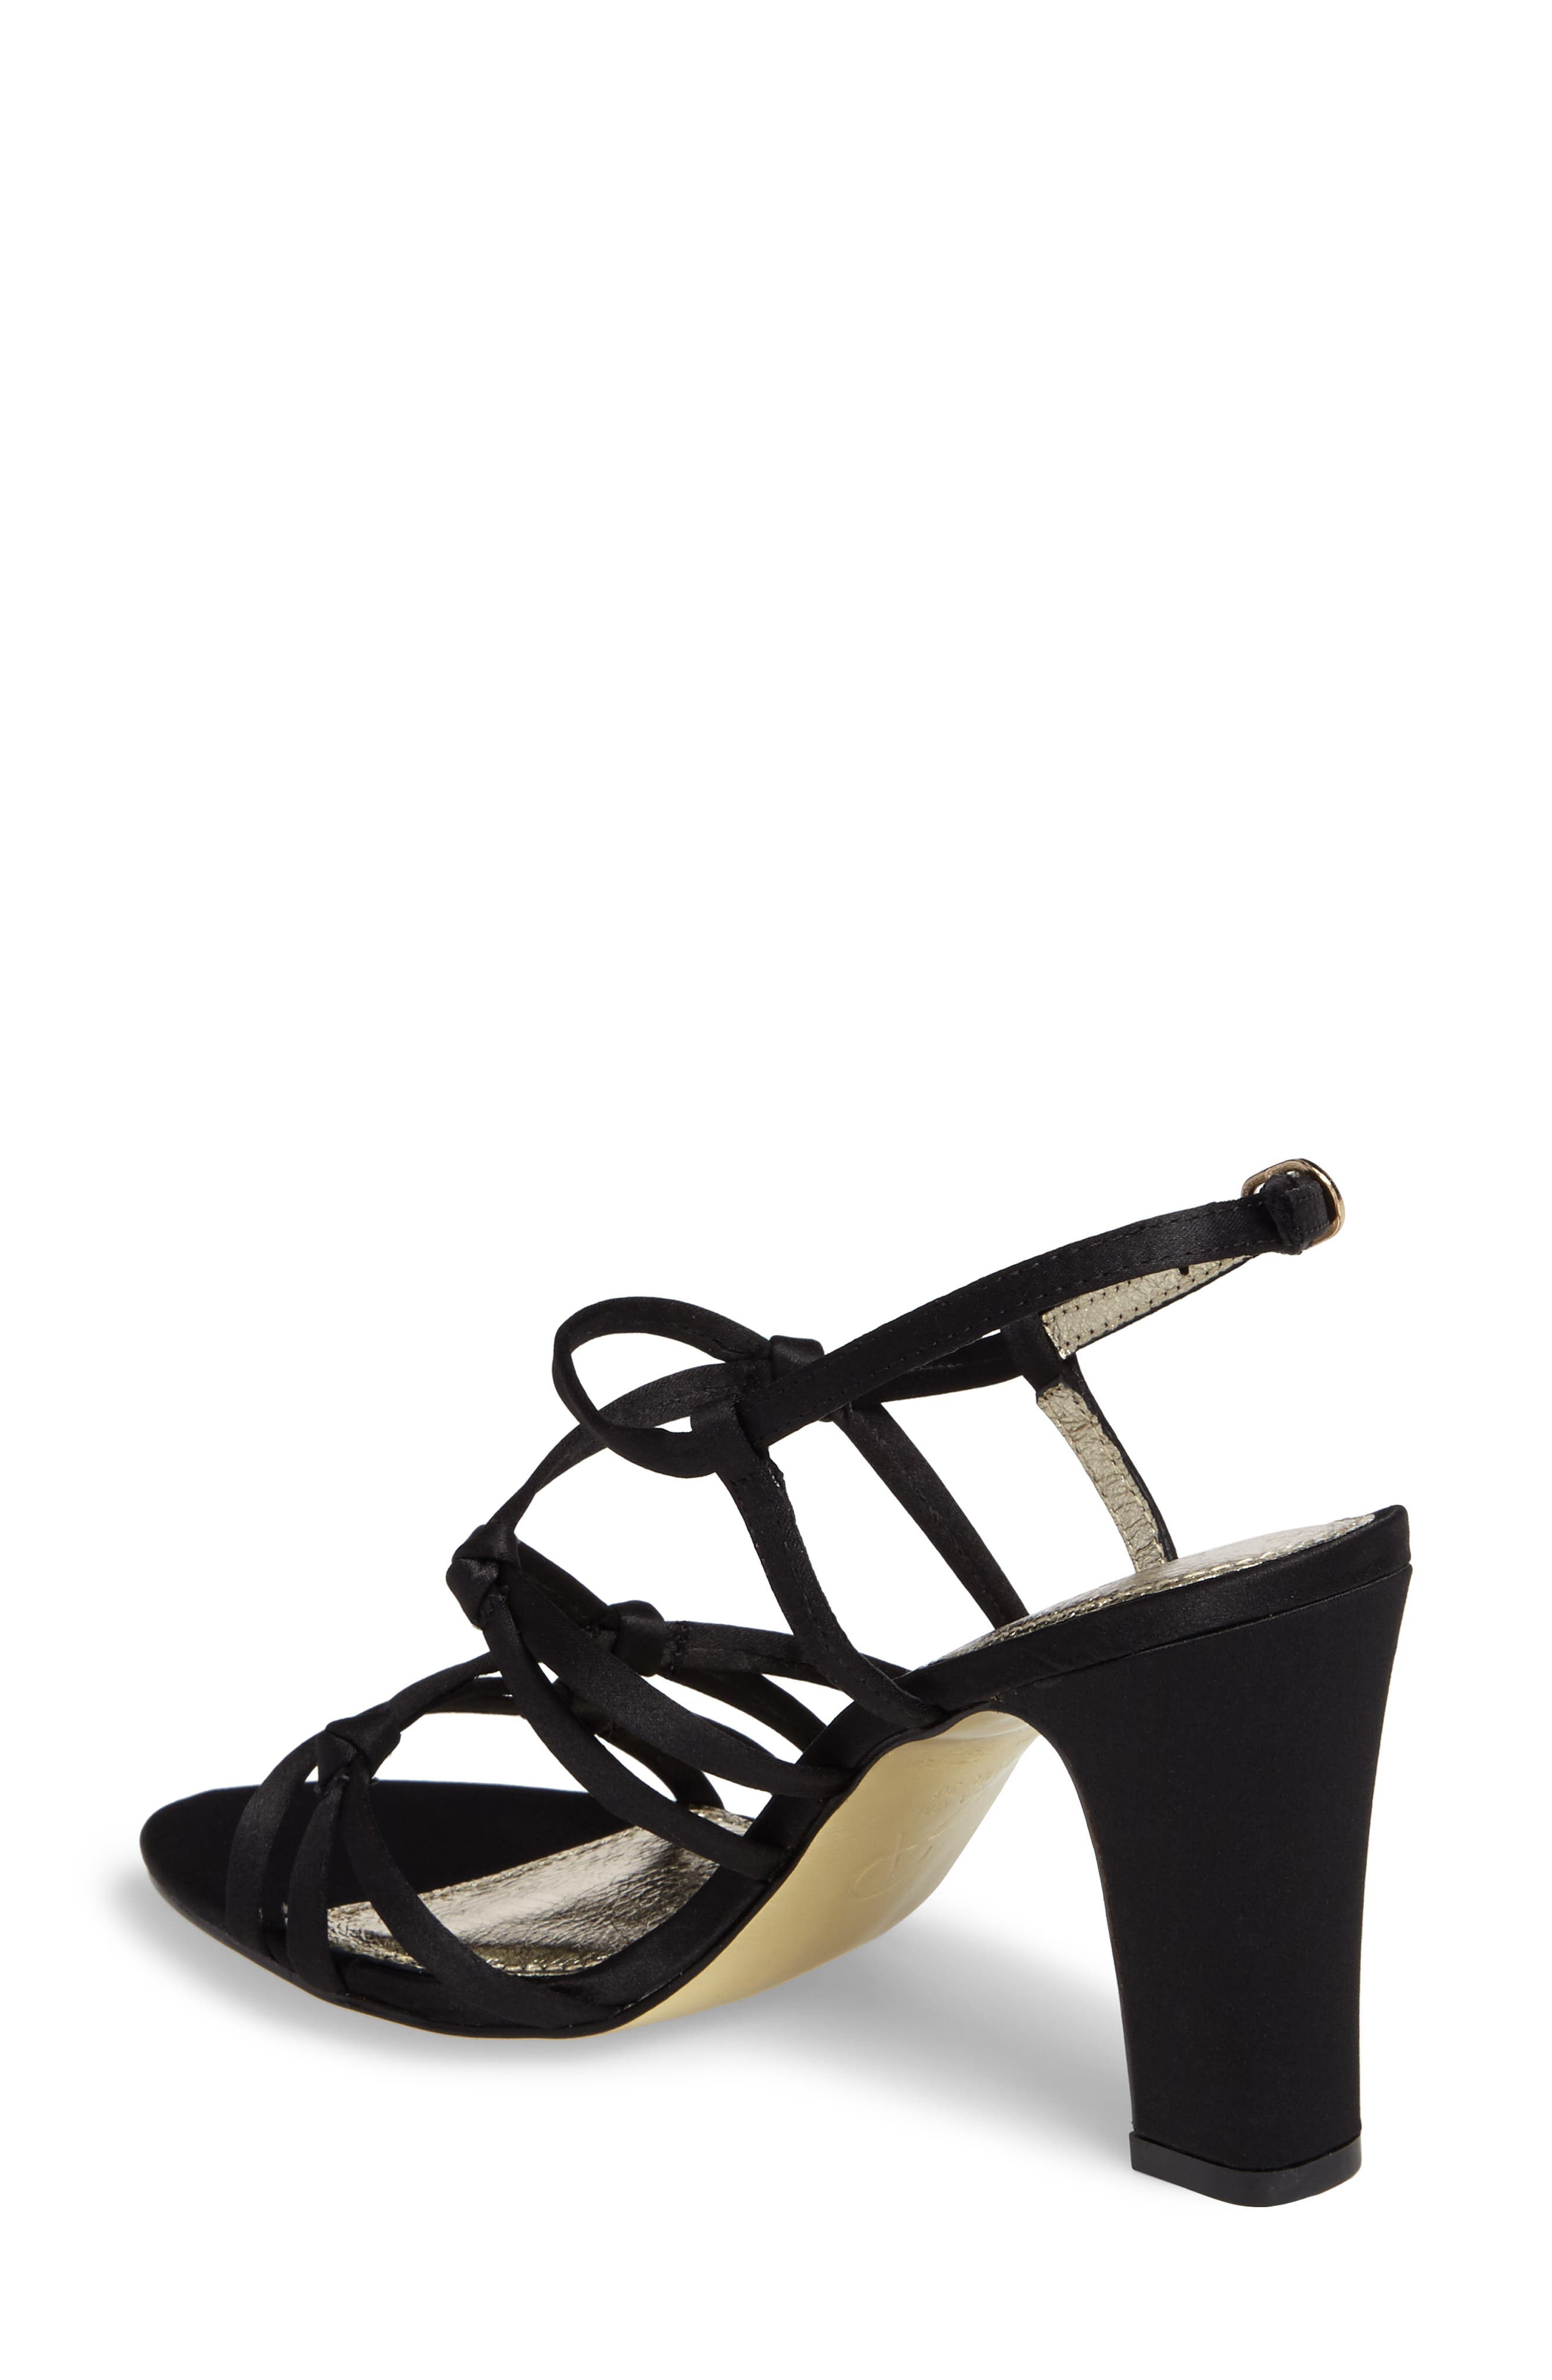 Adelson Knotted Strappy Sandal,                             Alternate thumbnail 2, color,                             001